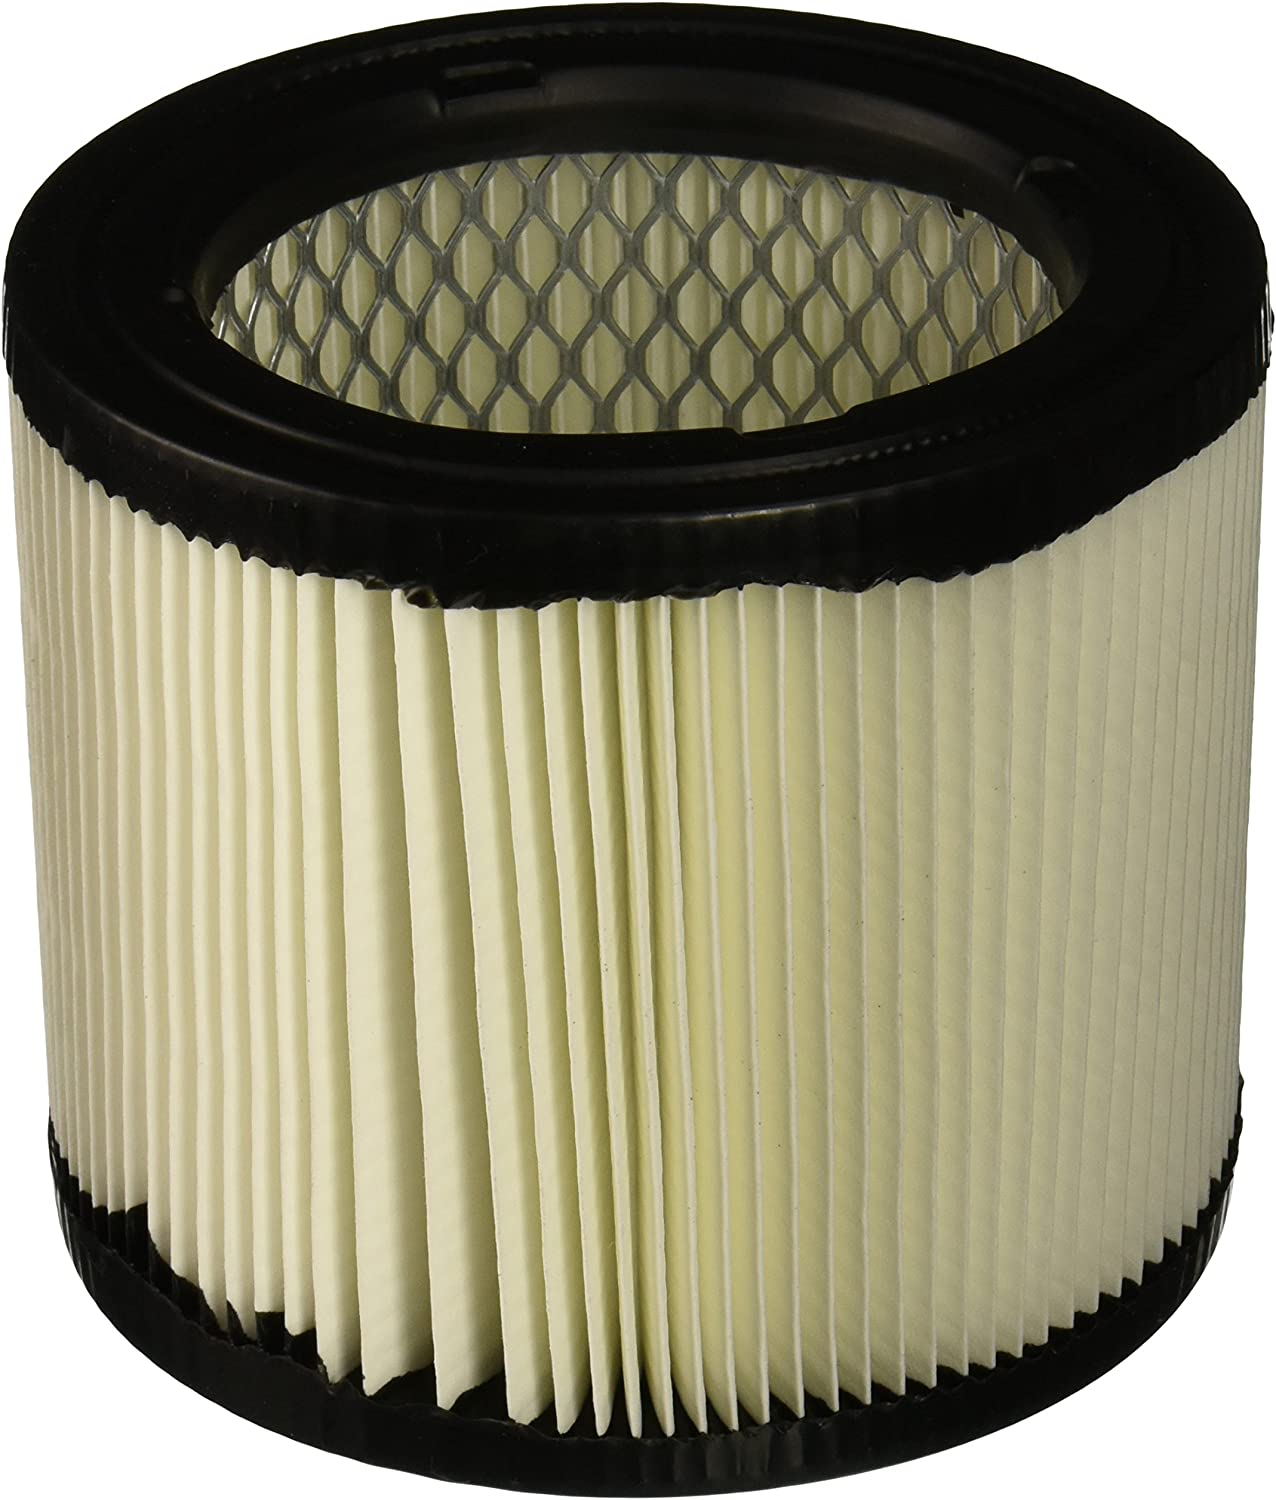 Shop Vac 903-98-00 HangUpA Wet and Dry Vac Cartridge Filter (Pack of 2)